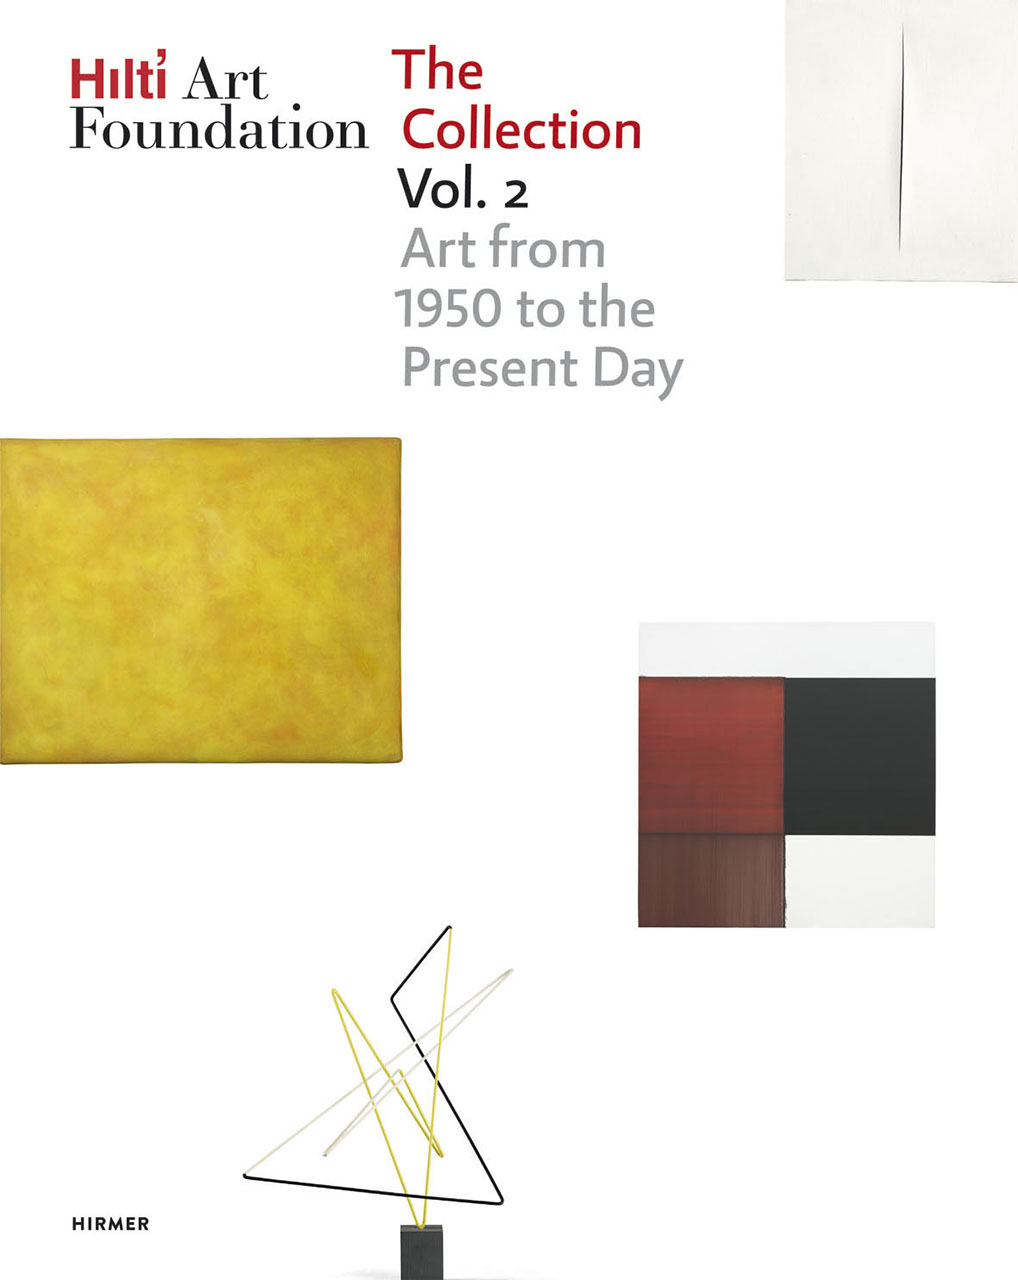 Hilti Art Foundation. The Collection. Vol. II: Art from 1950 to the Present Day